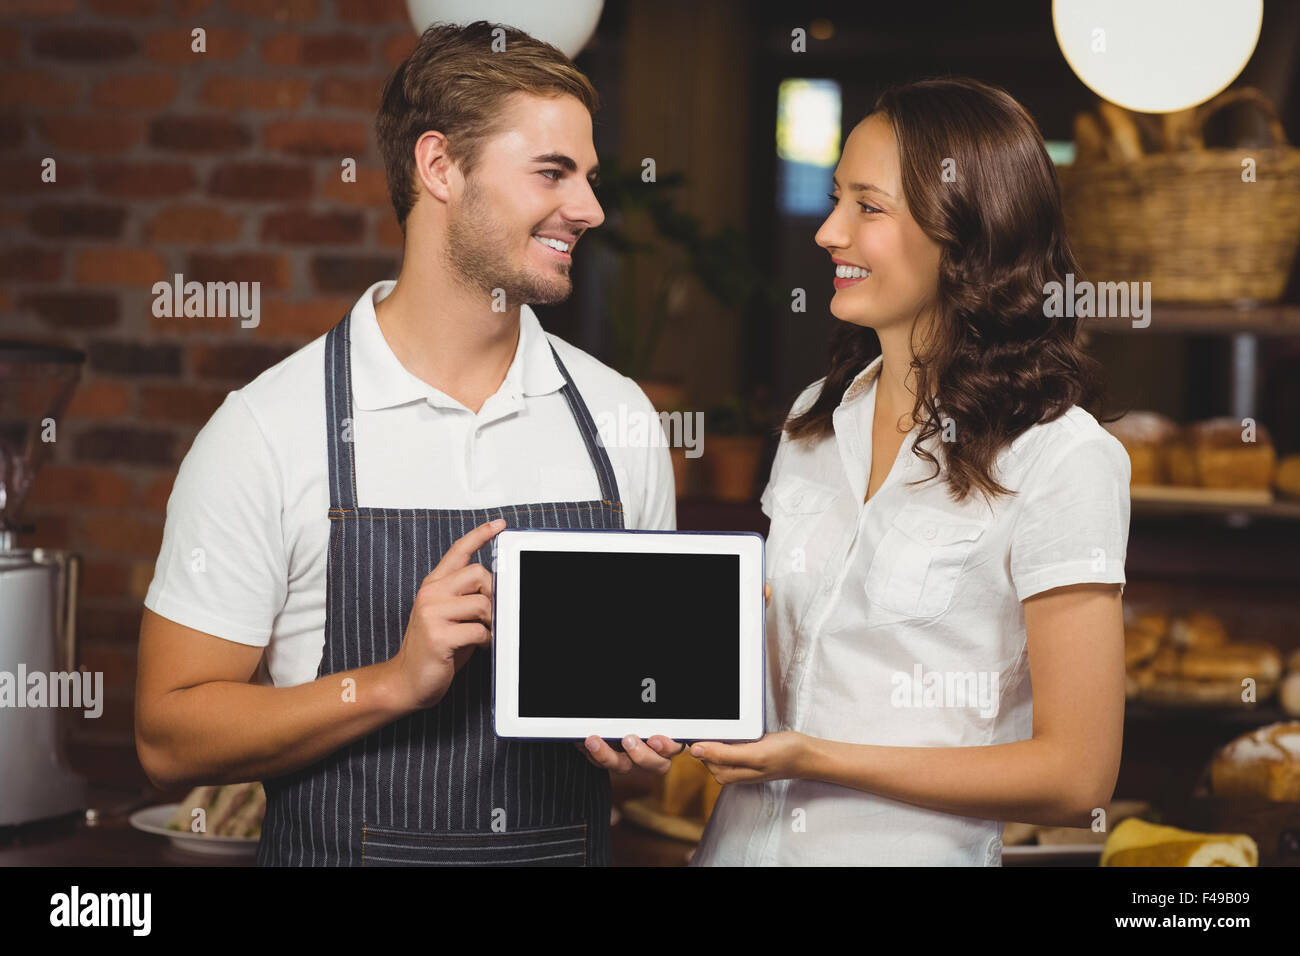 Smiling co-workers showing a tablet - Stock Image